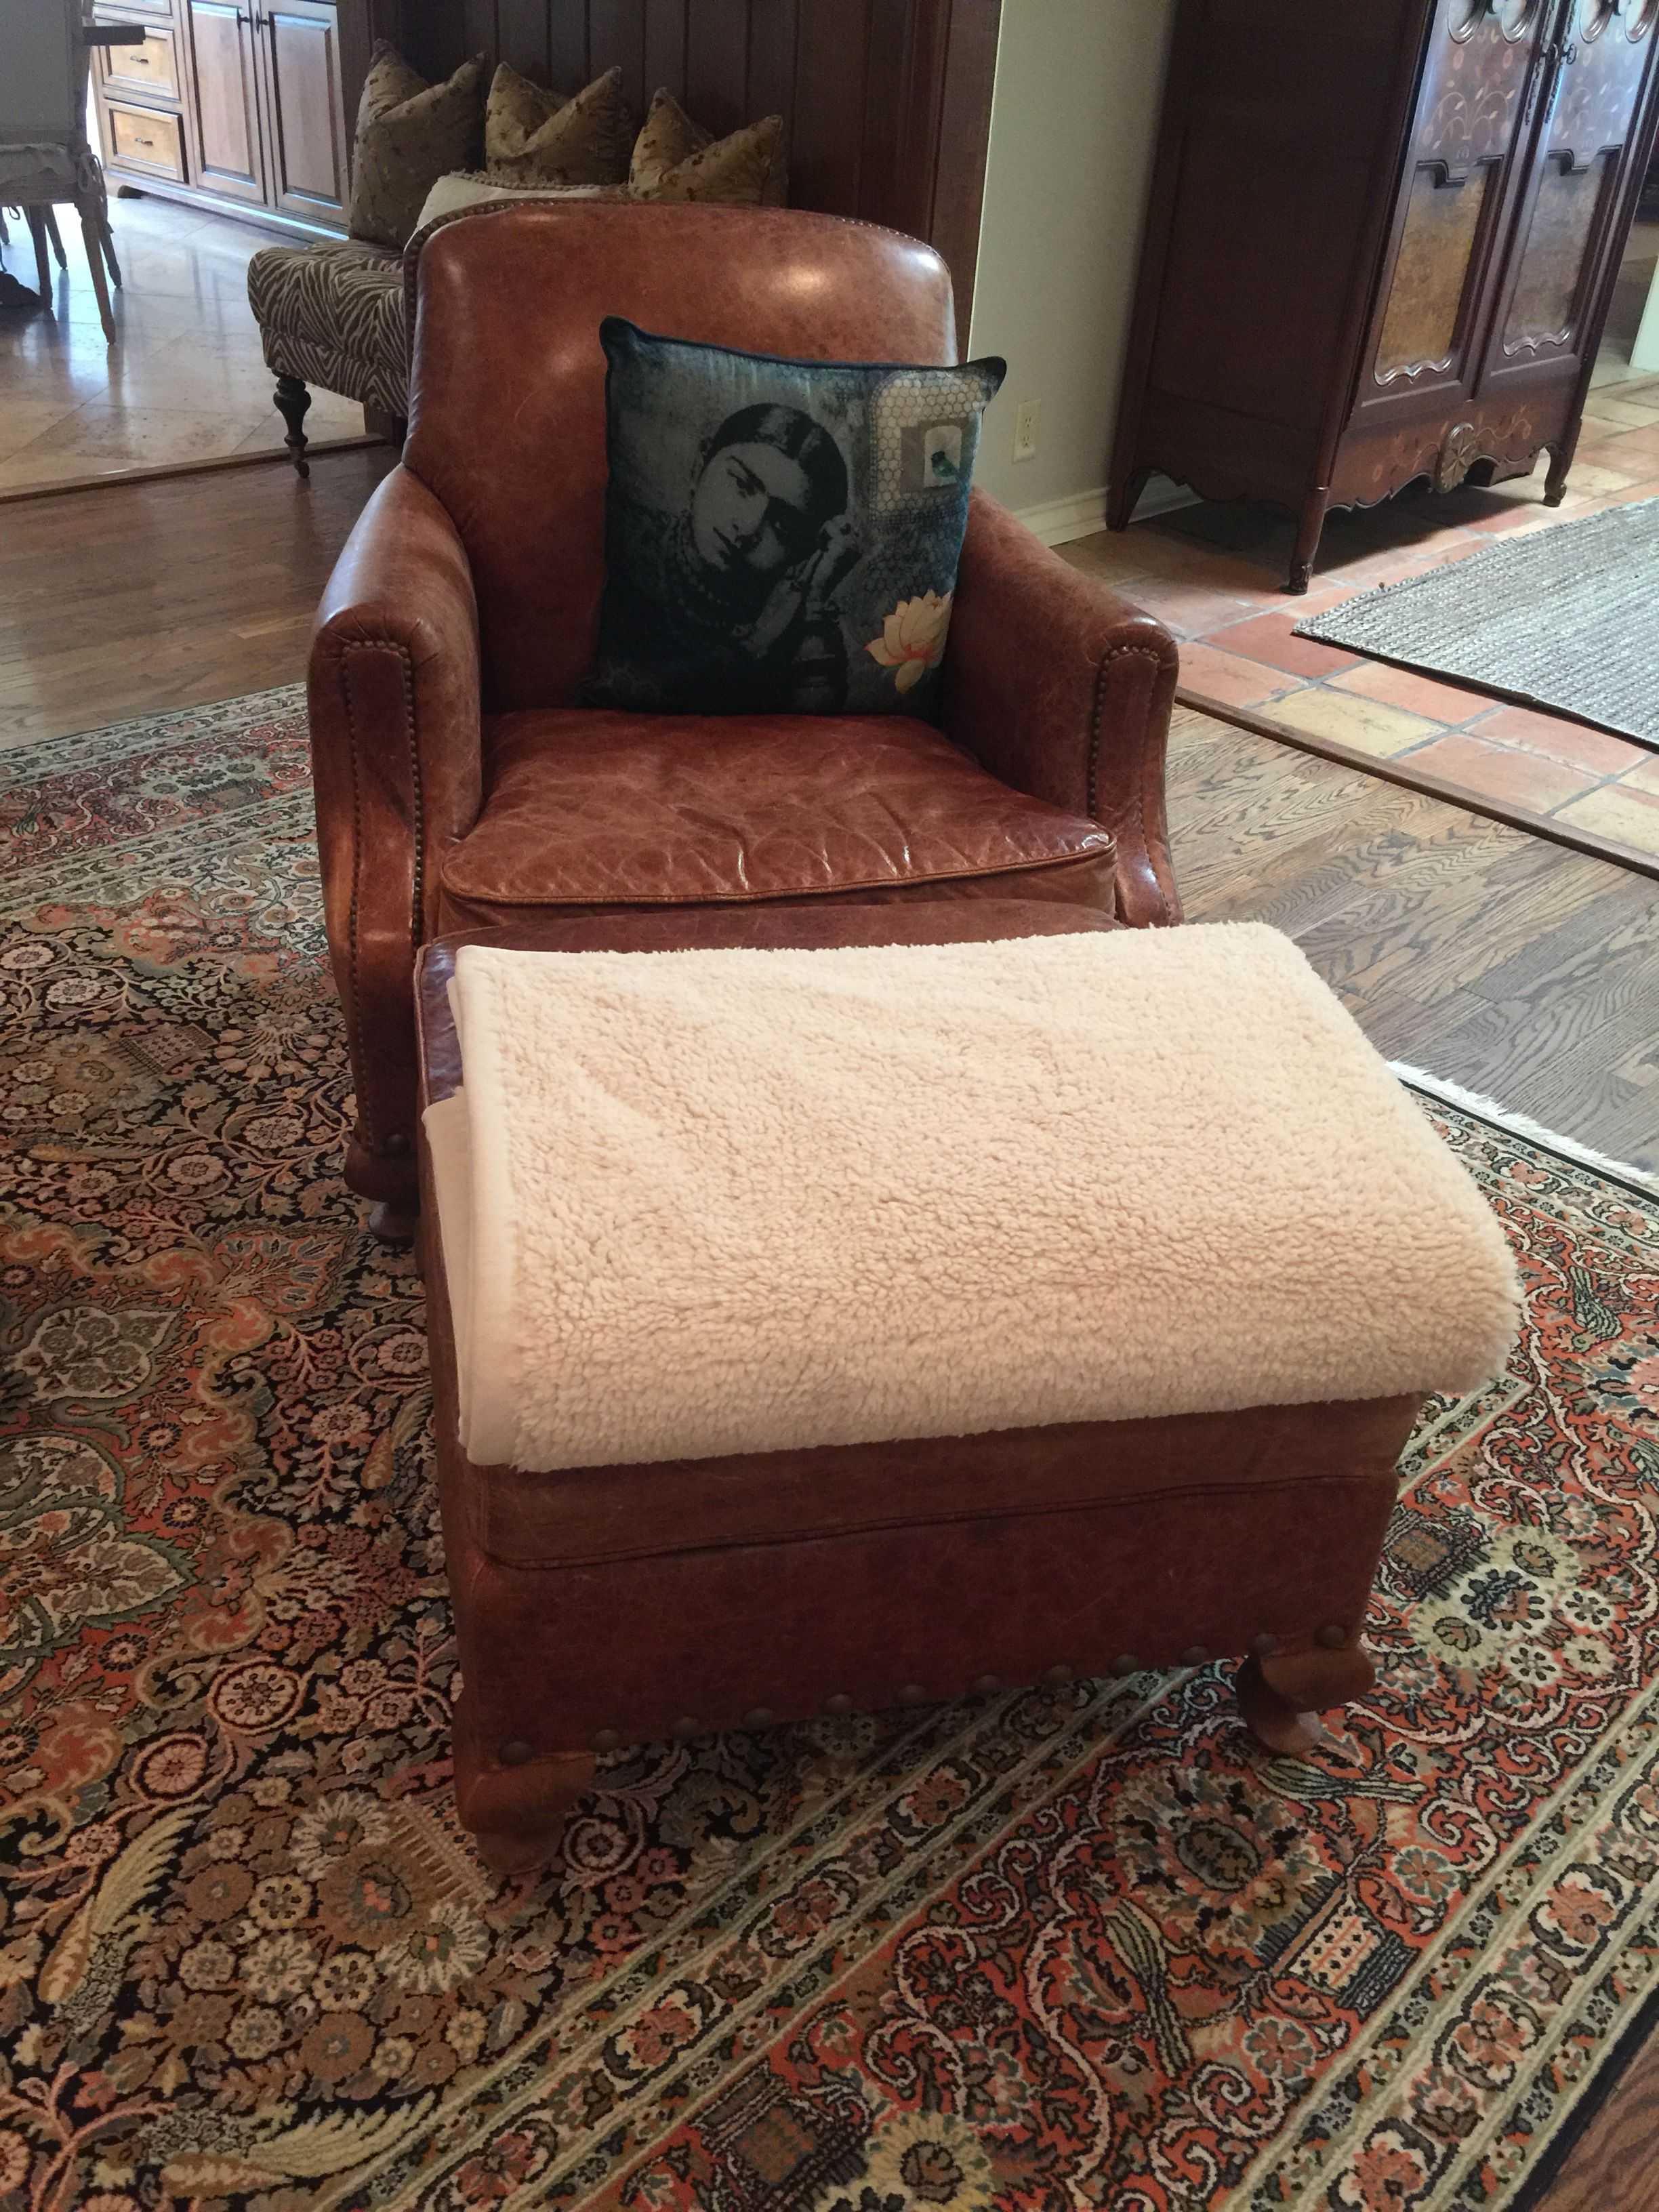 Living Room Leather Chair and ottoman. Henredon purchased